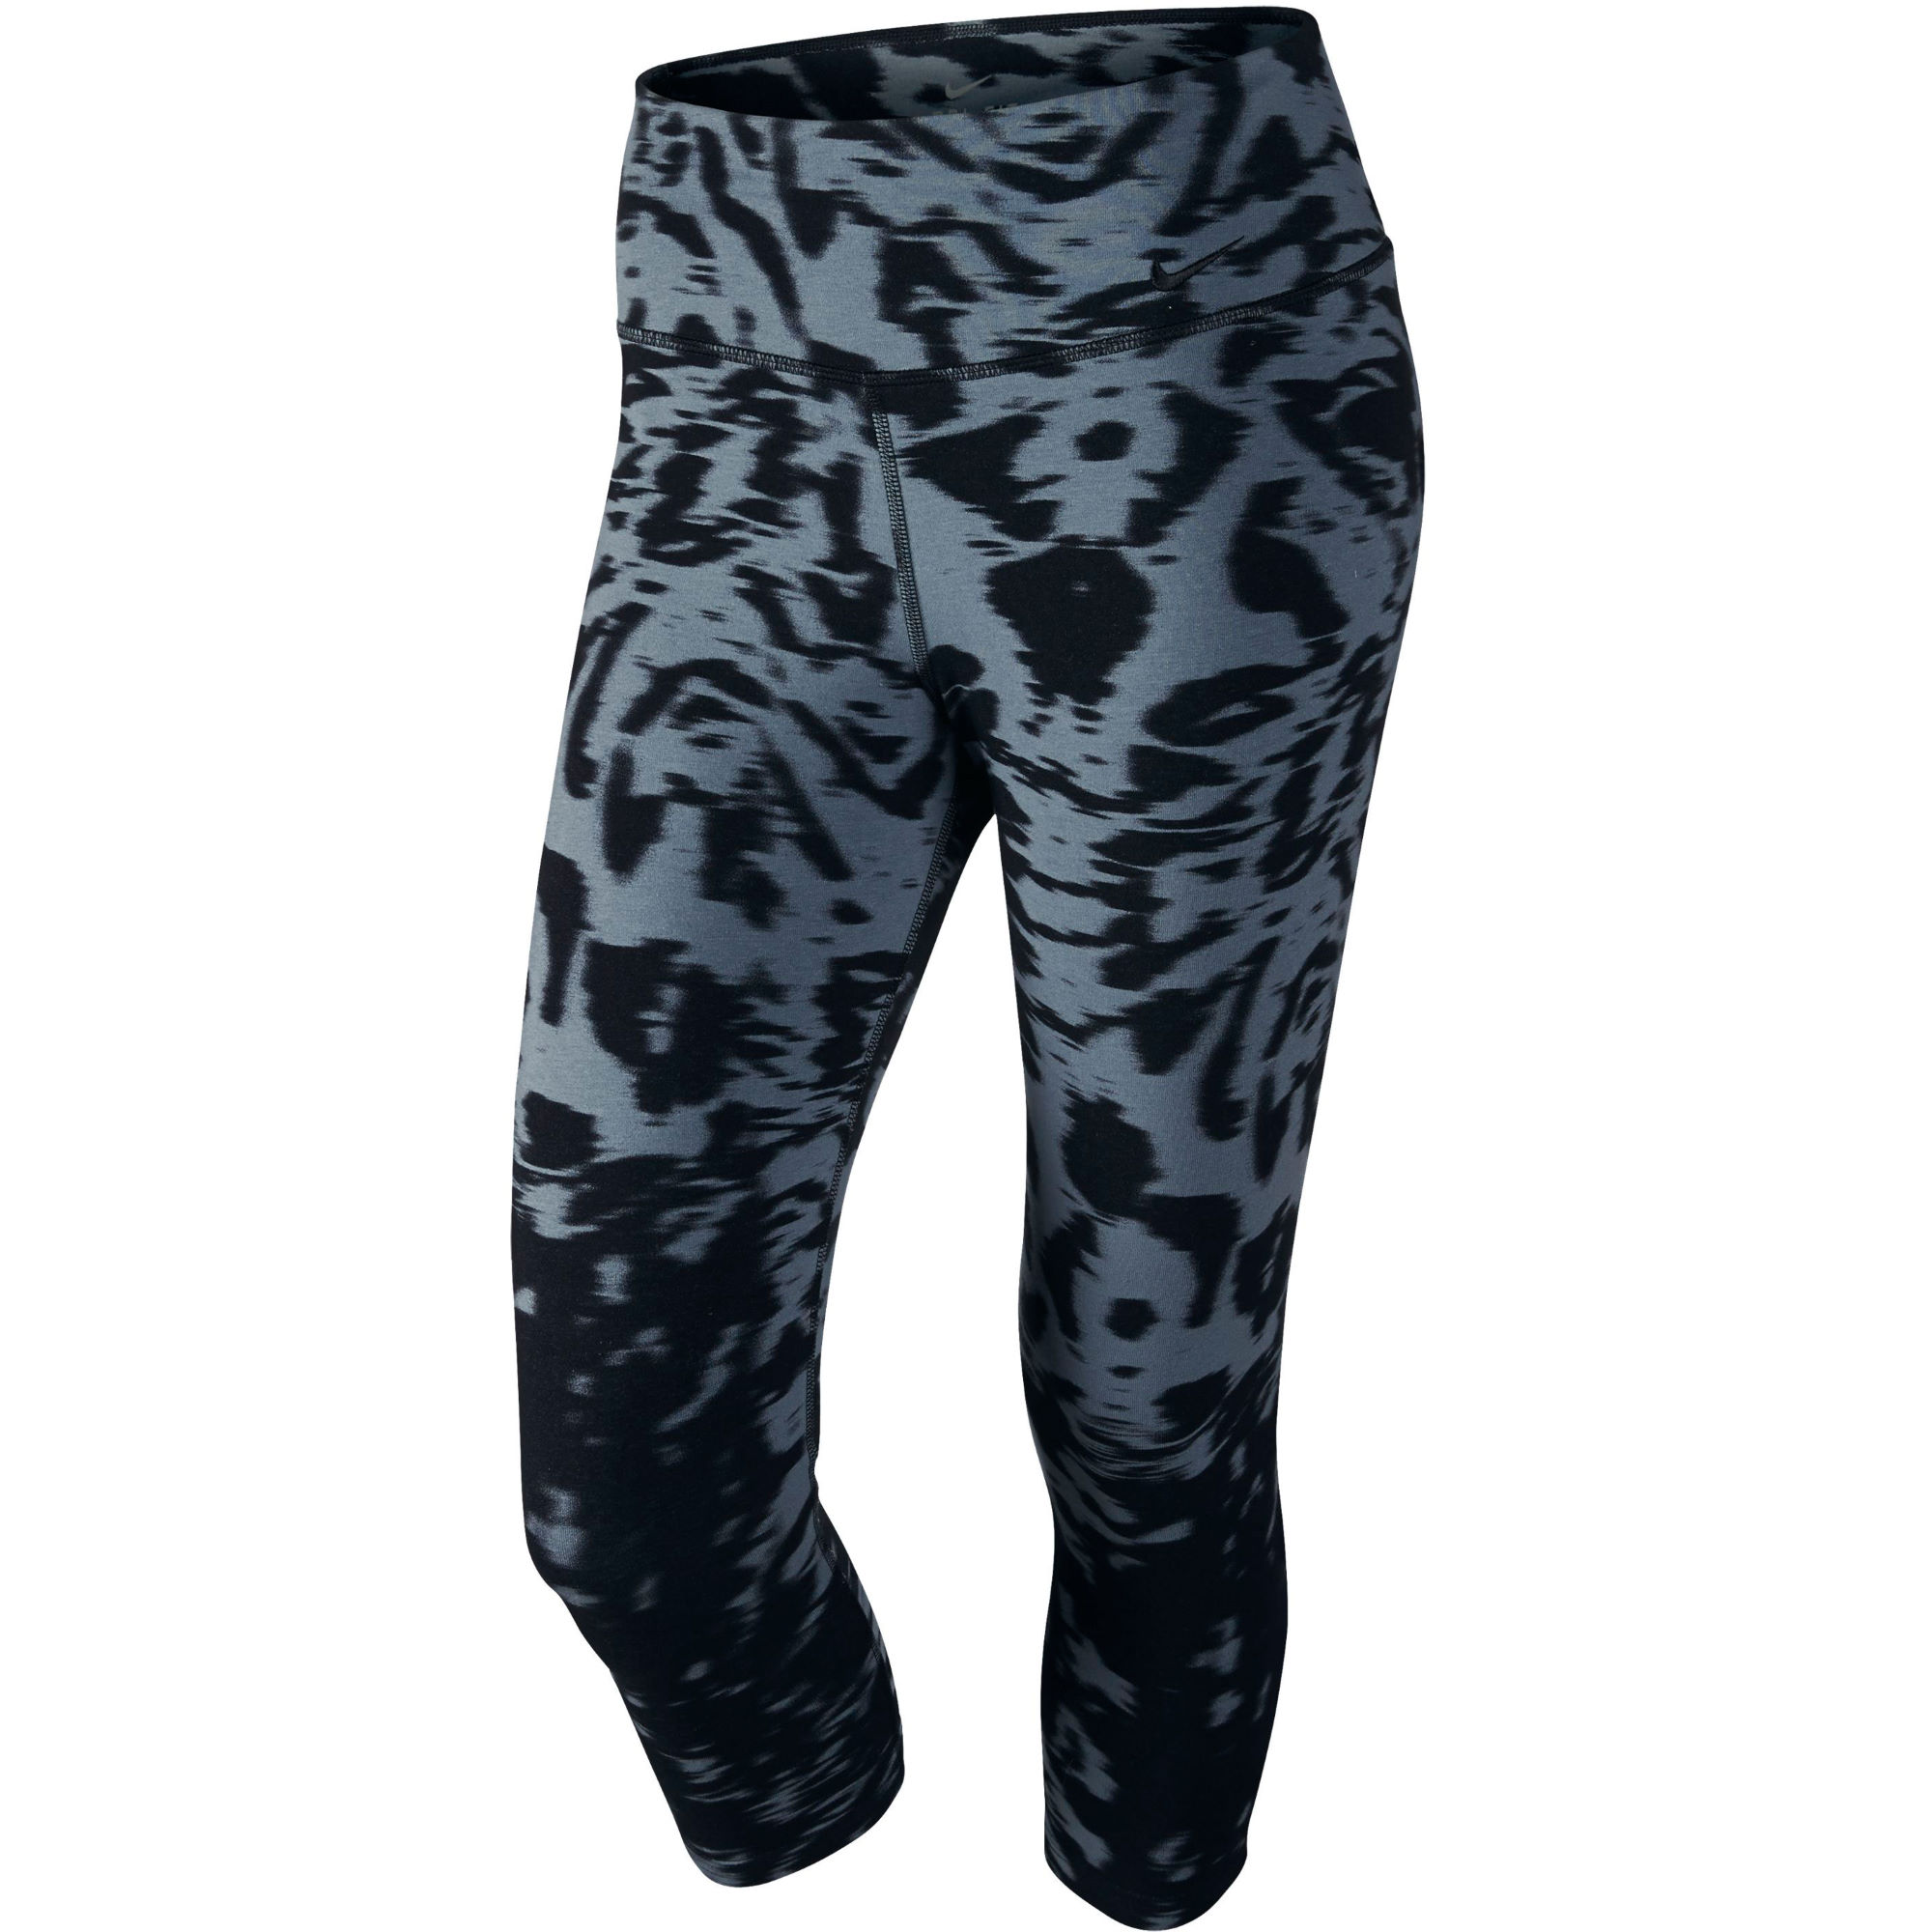 Nike Dri-Fit Legend Cotton 3 4 Tight